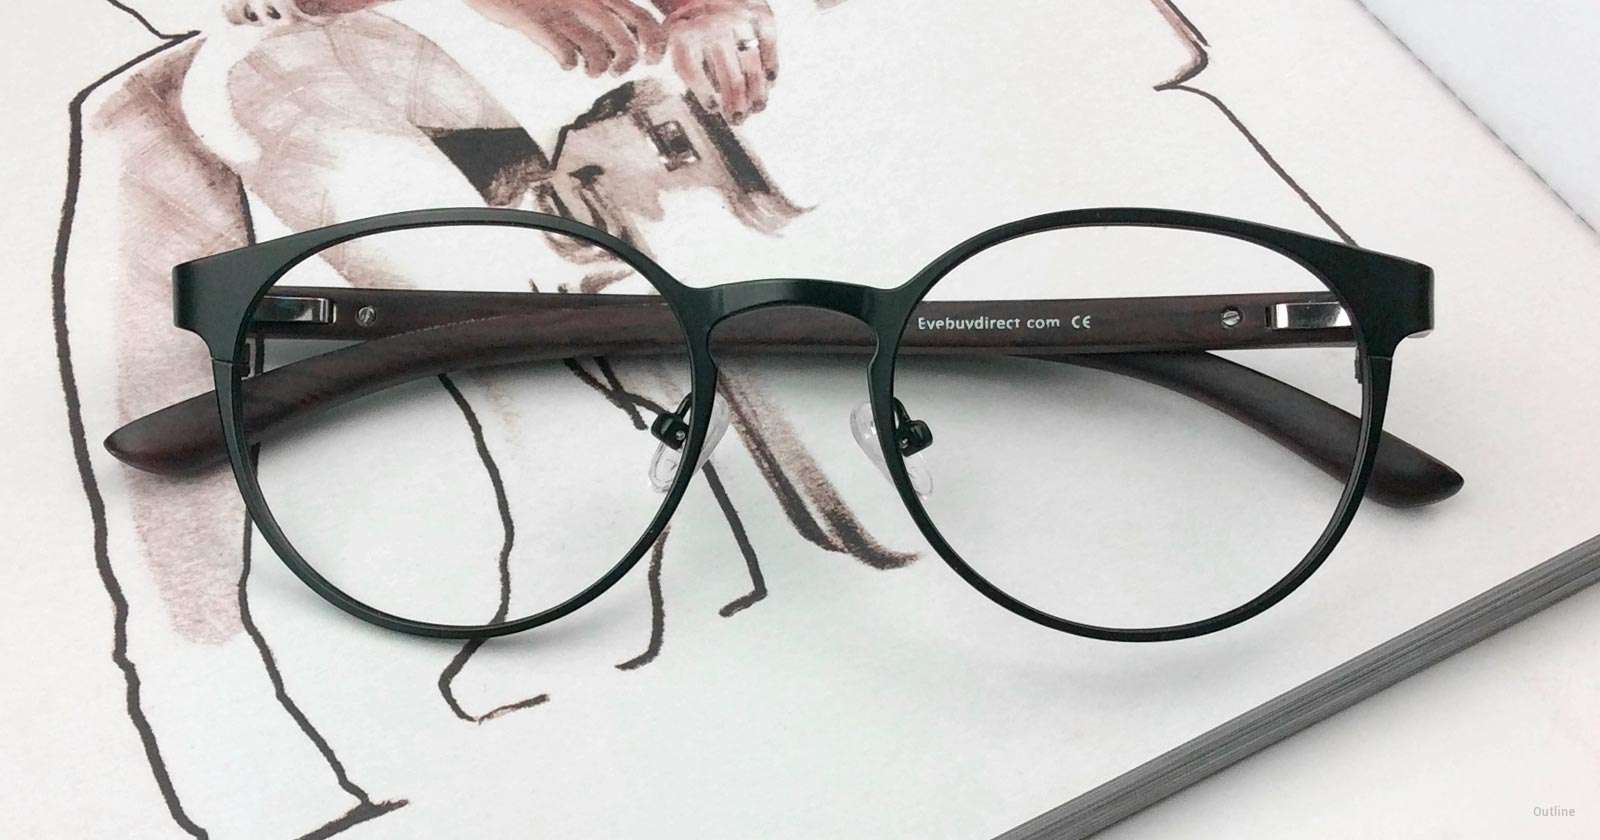 Why Black Rim Glasses are the Classiest | Blog | EyeBuyDirect